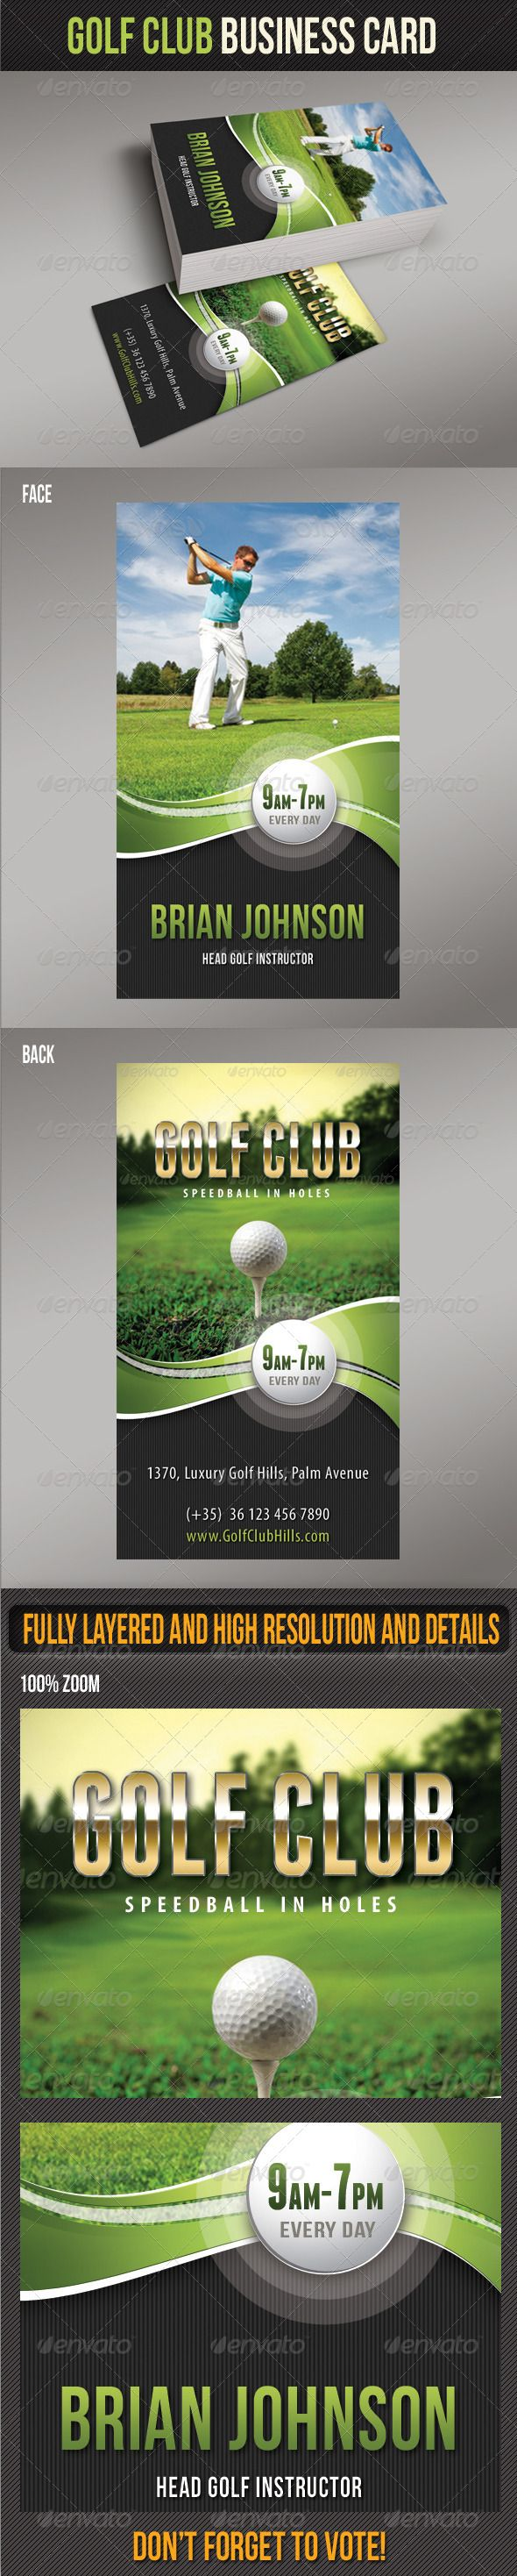 16 best Golf Instructor Business Cards images on Pinterest ...